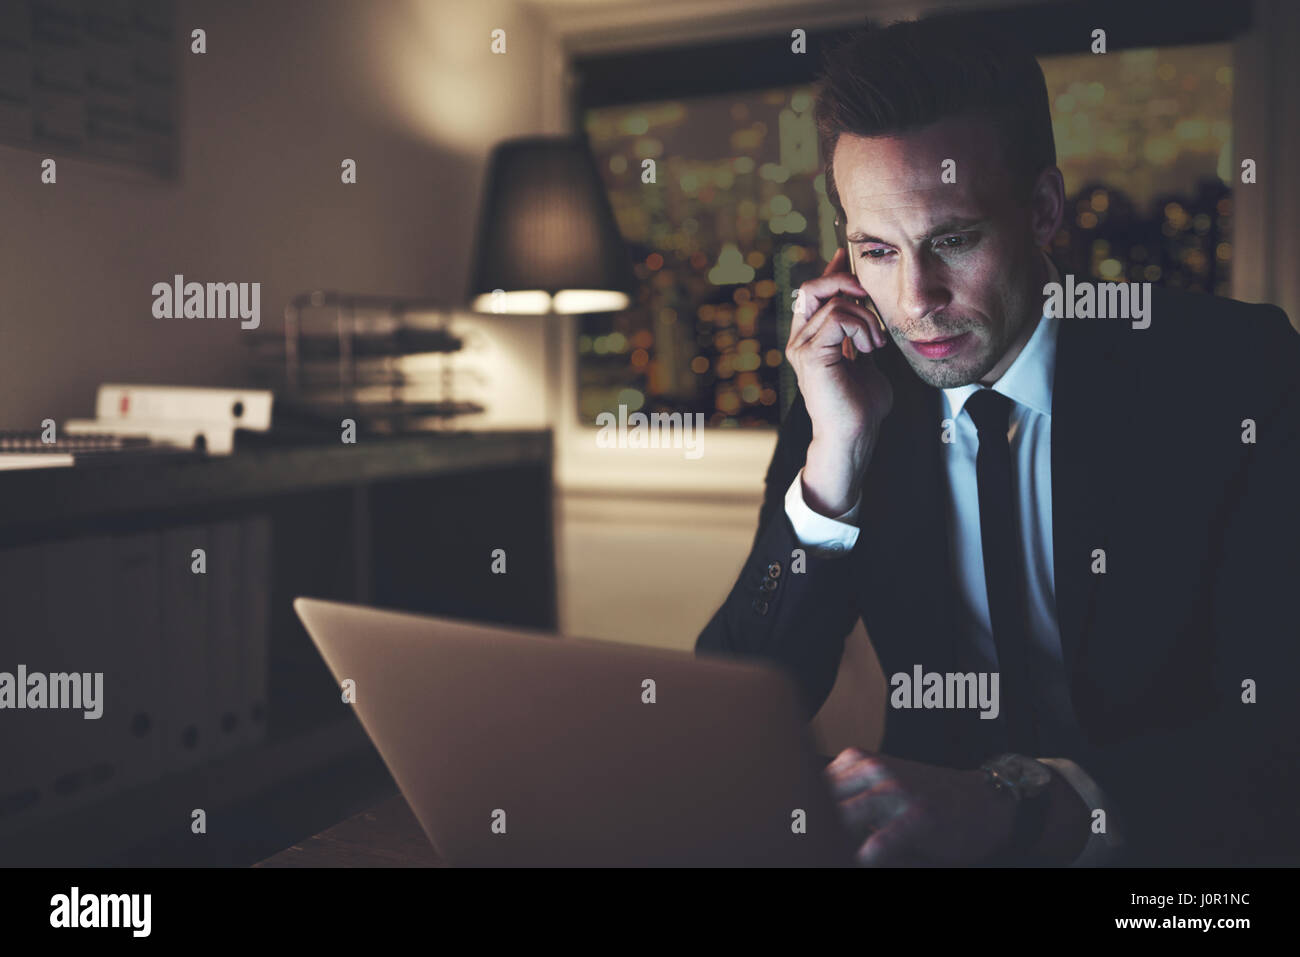 Thoughtful businessman in the office browsing laptop and talking smartphone while taking overtime. - Stock Image